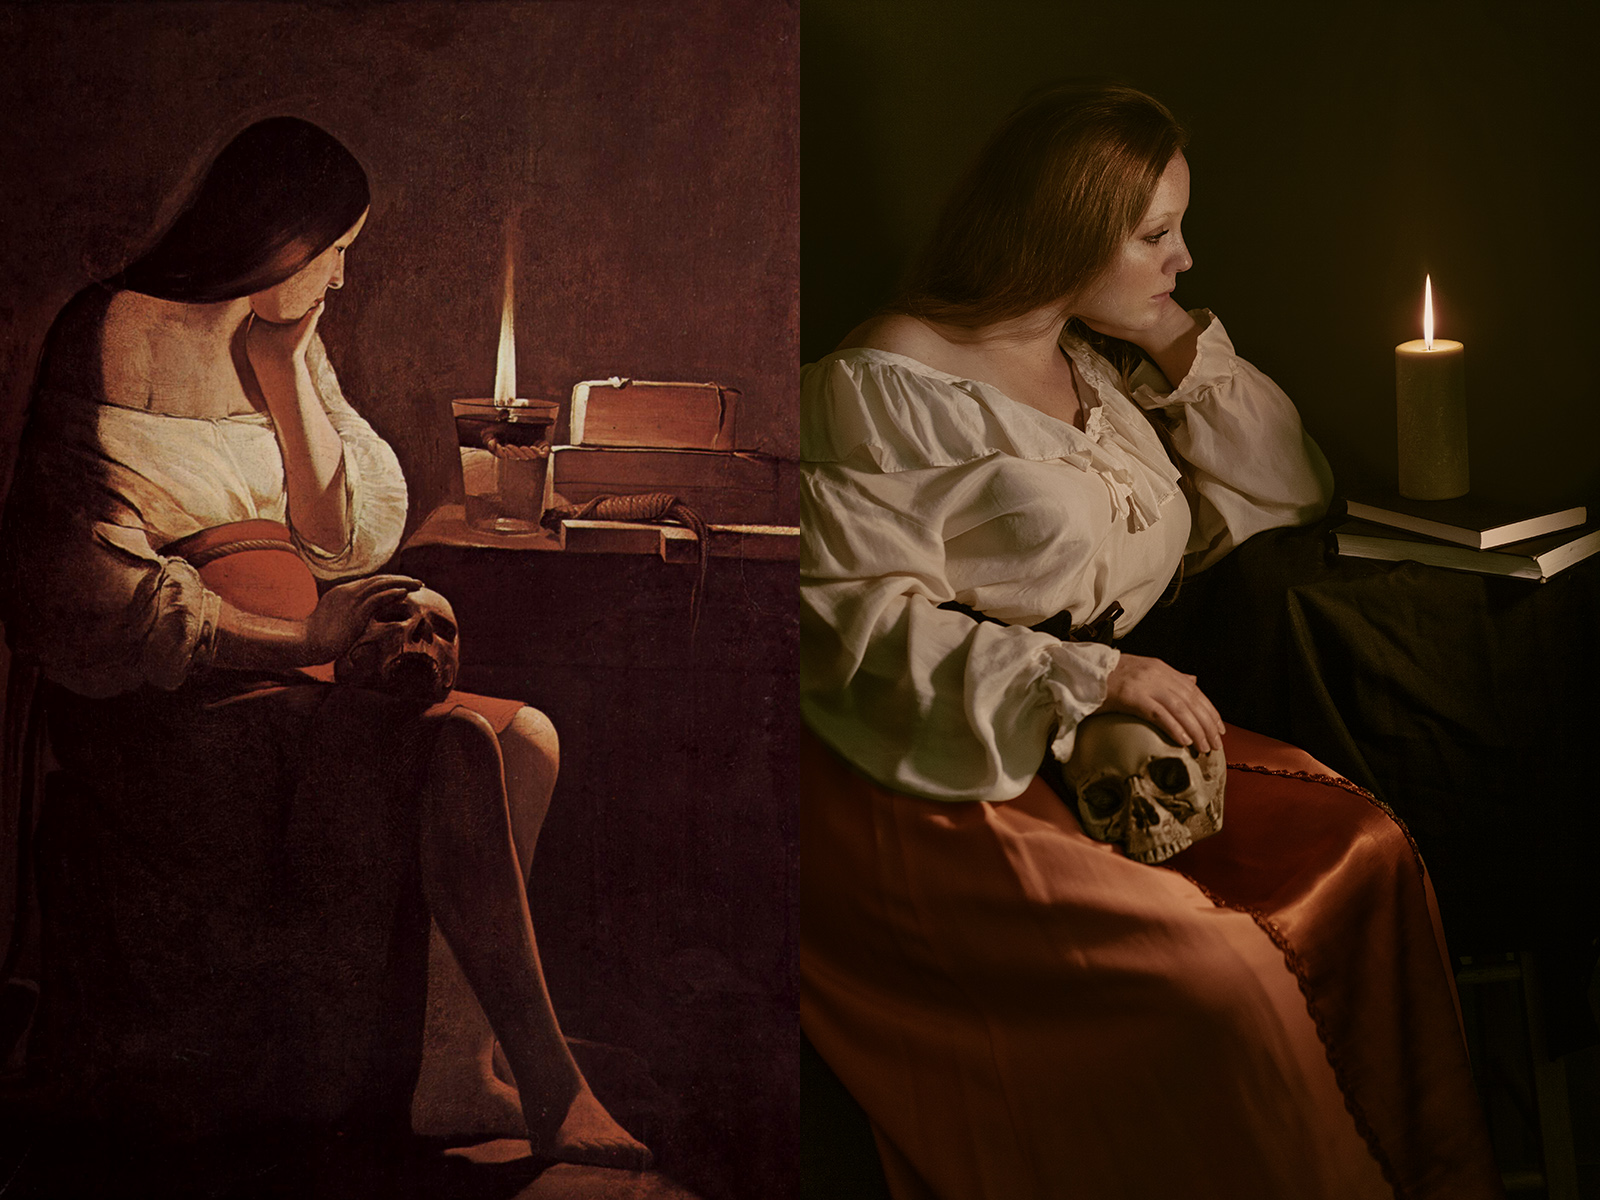 First saw The Penitent Magdalene in an art history class and then I saw a very similar work by La Tour at the Met in New York. Love how the candle light in the painting rakes across her body. Its warm, intimate, and kind of disquieting.